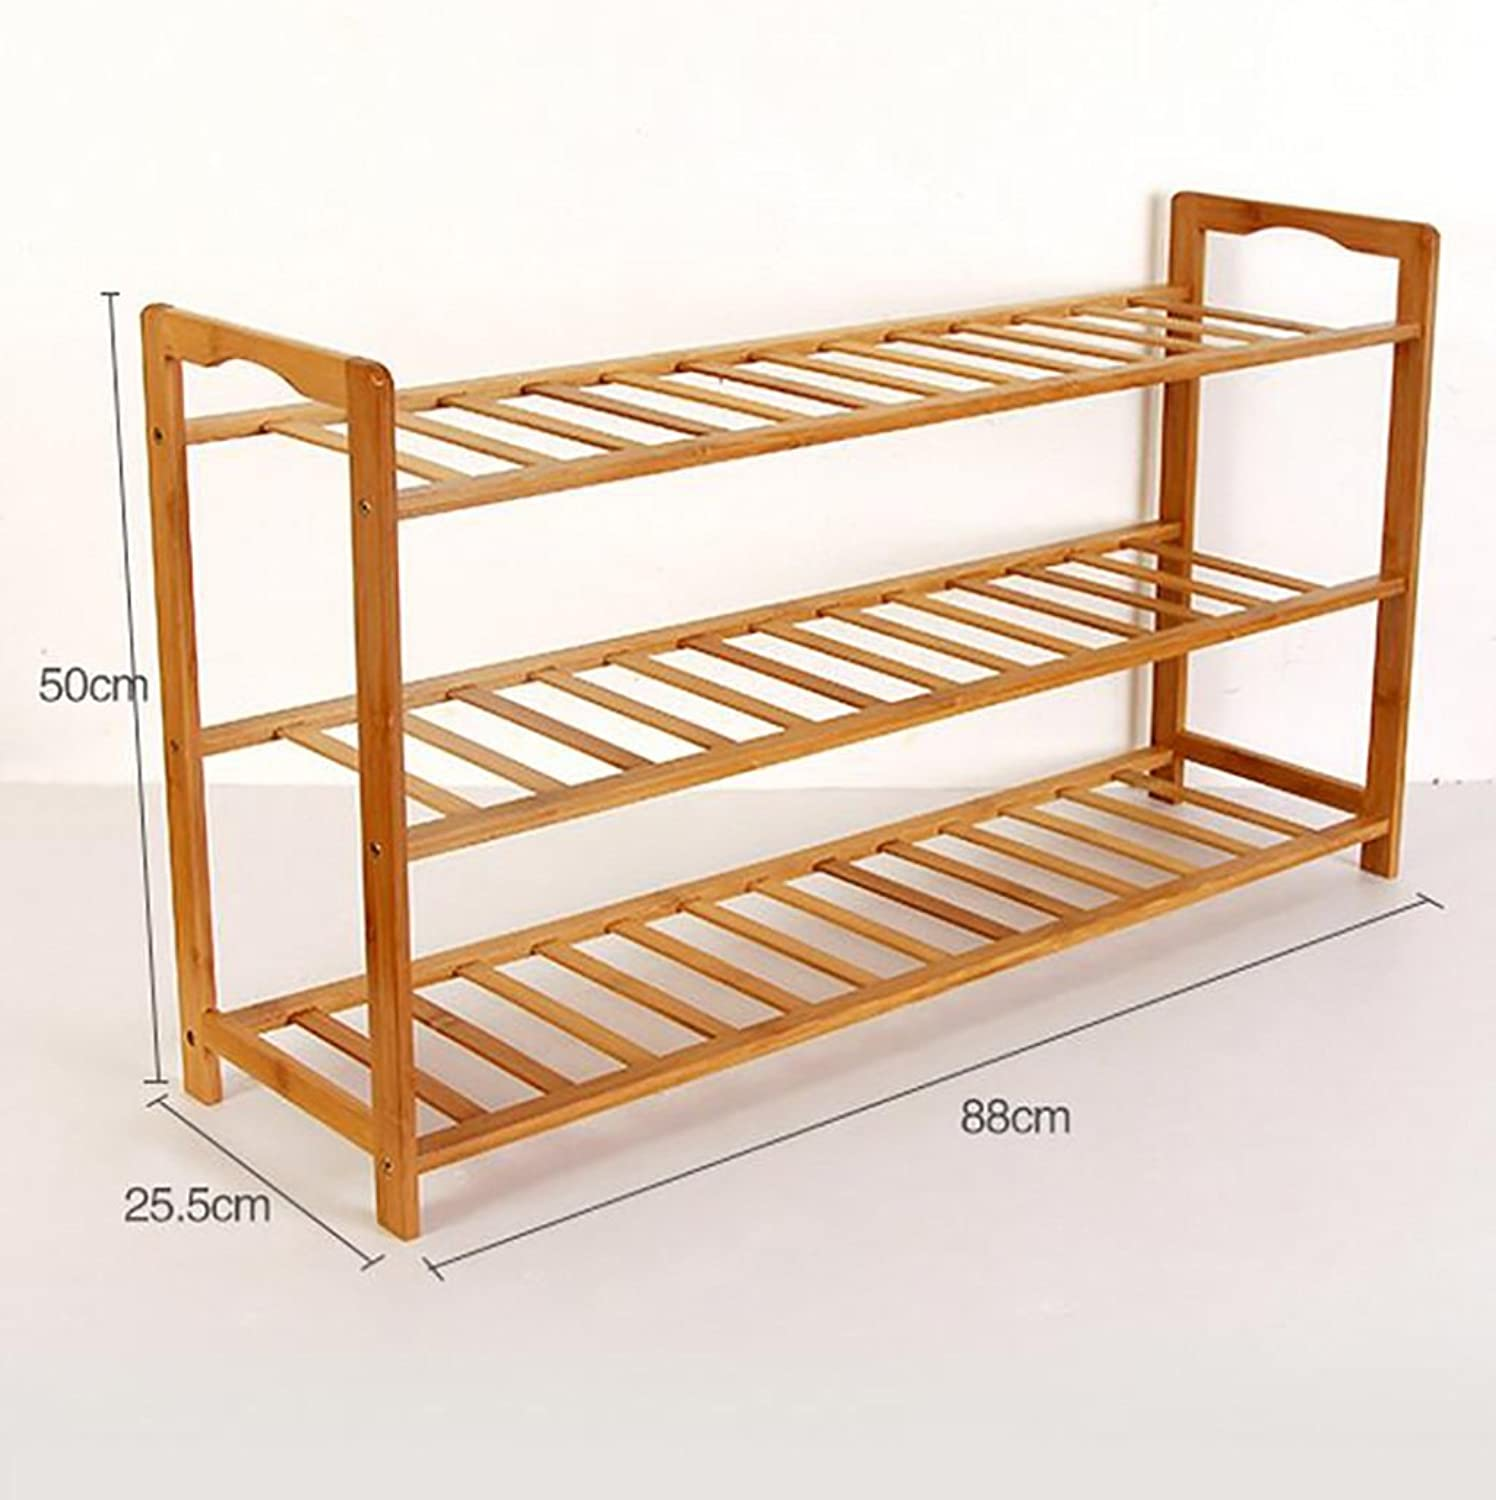 shoes Bench Organizing Rack Bamboo Simple shoes Rack Multi - Storey Dormitory shoes Frame Economic Home Assembly dust - Proof Solid Wood shoes Rack (color   1, Size   88cm)